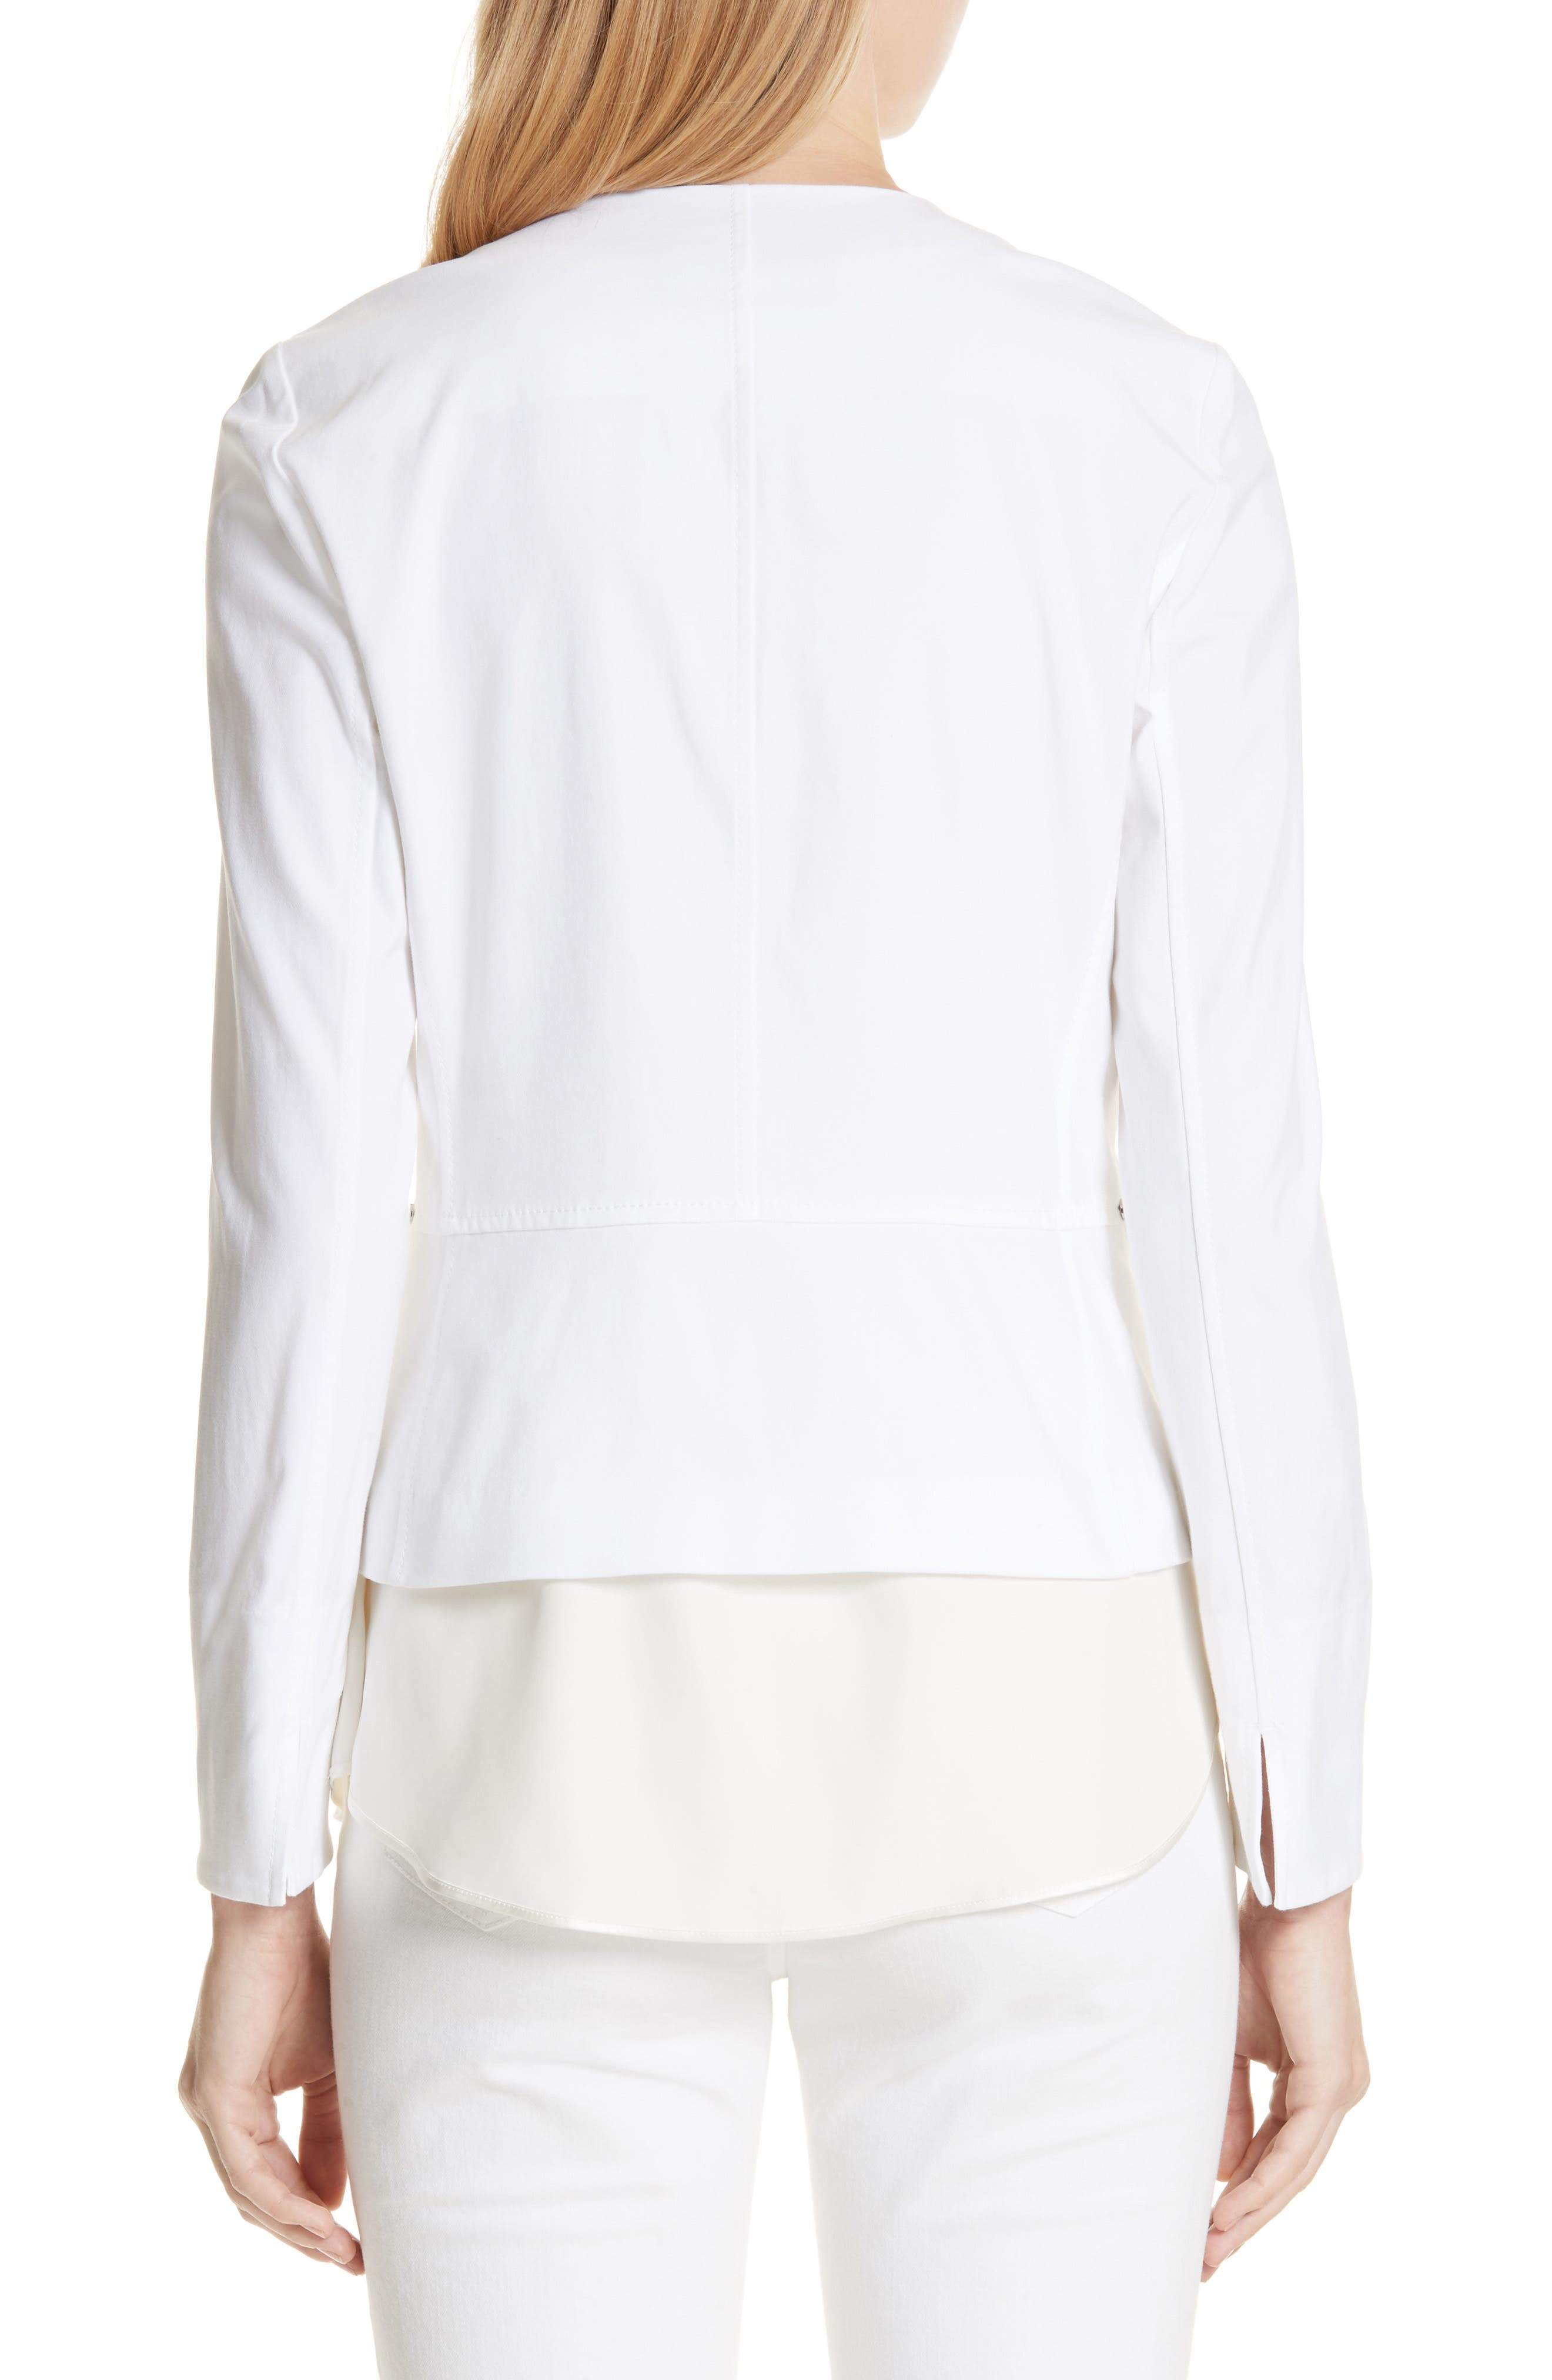 Noelle Catalina Stretch Jacket,                             Alternate thumbnail 2, color,                             White